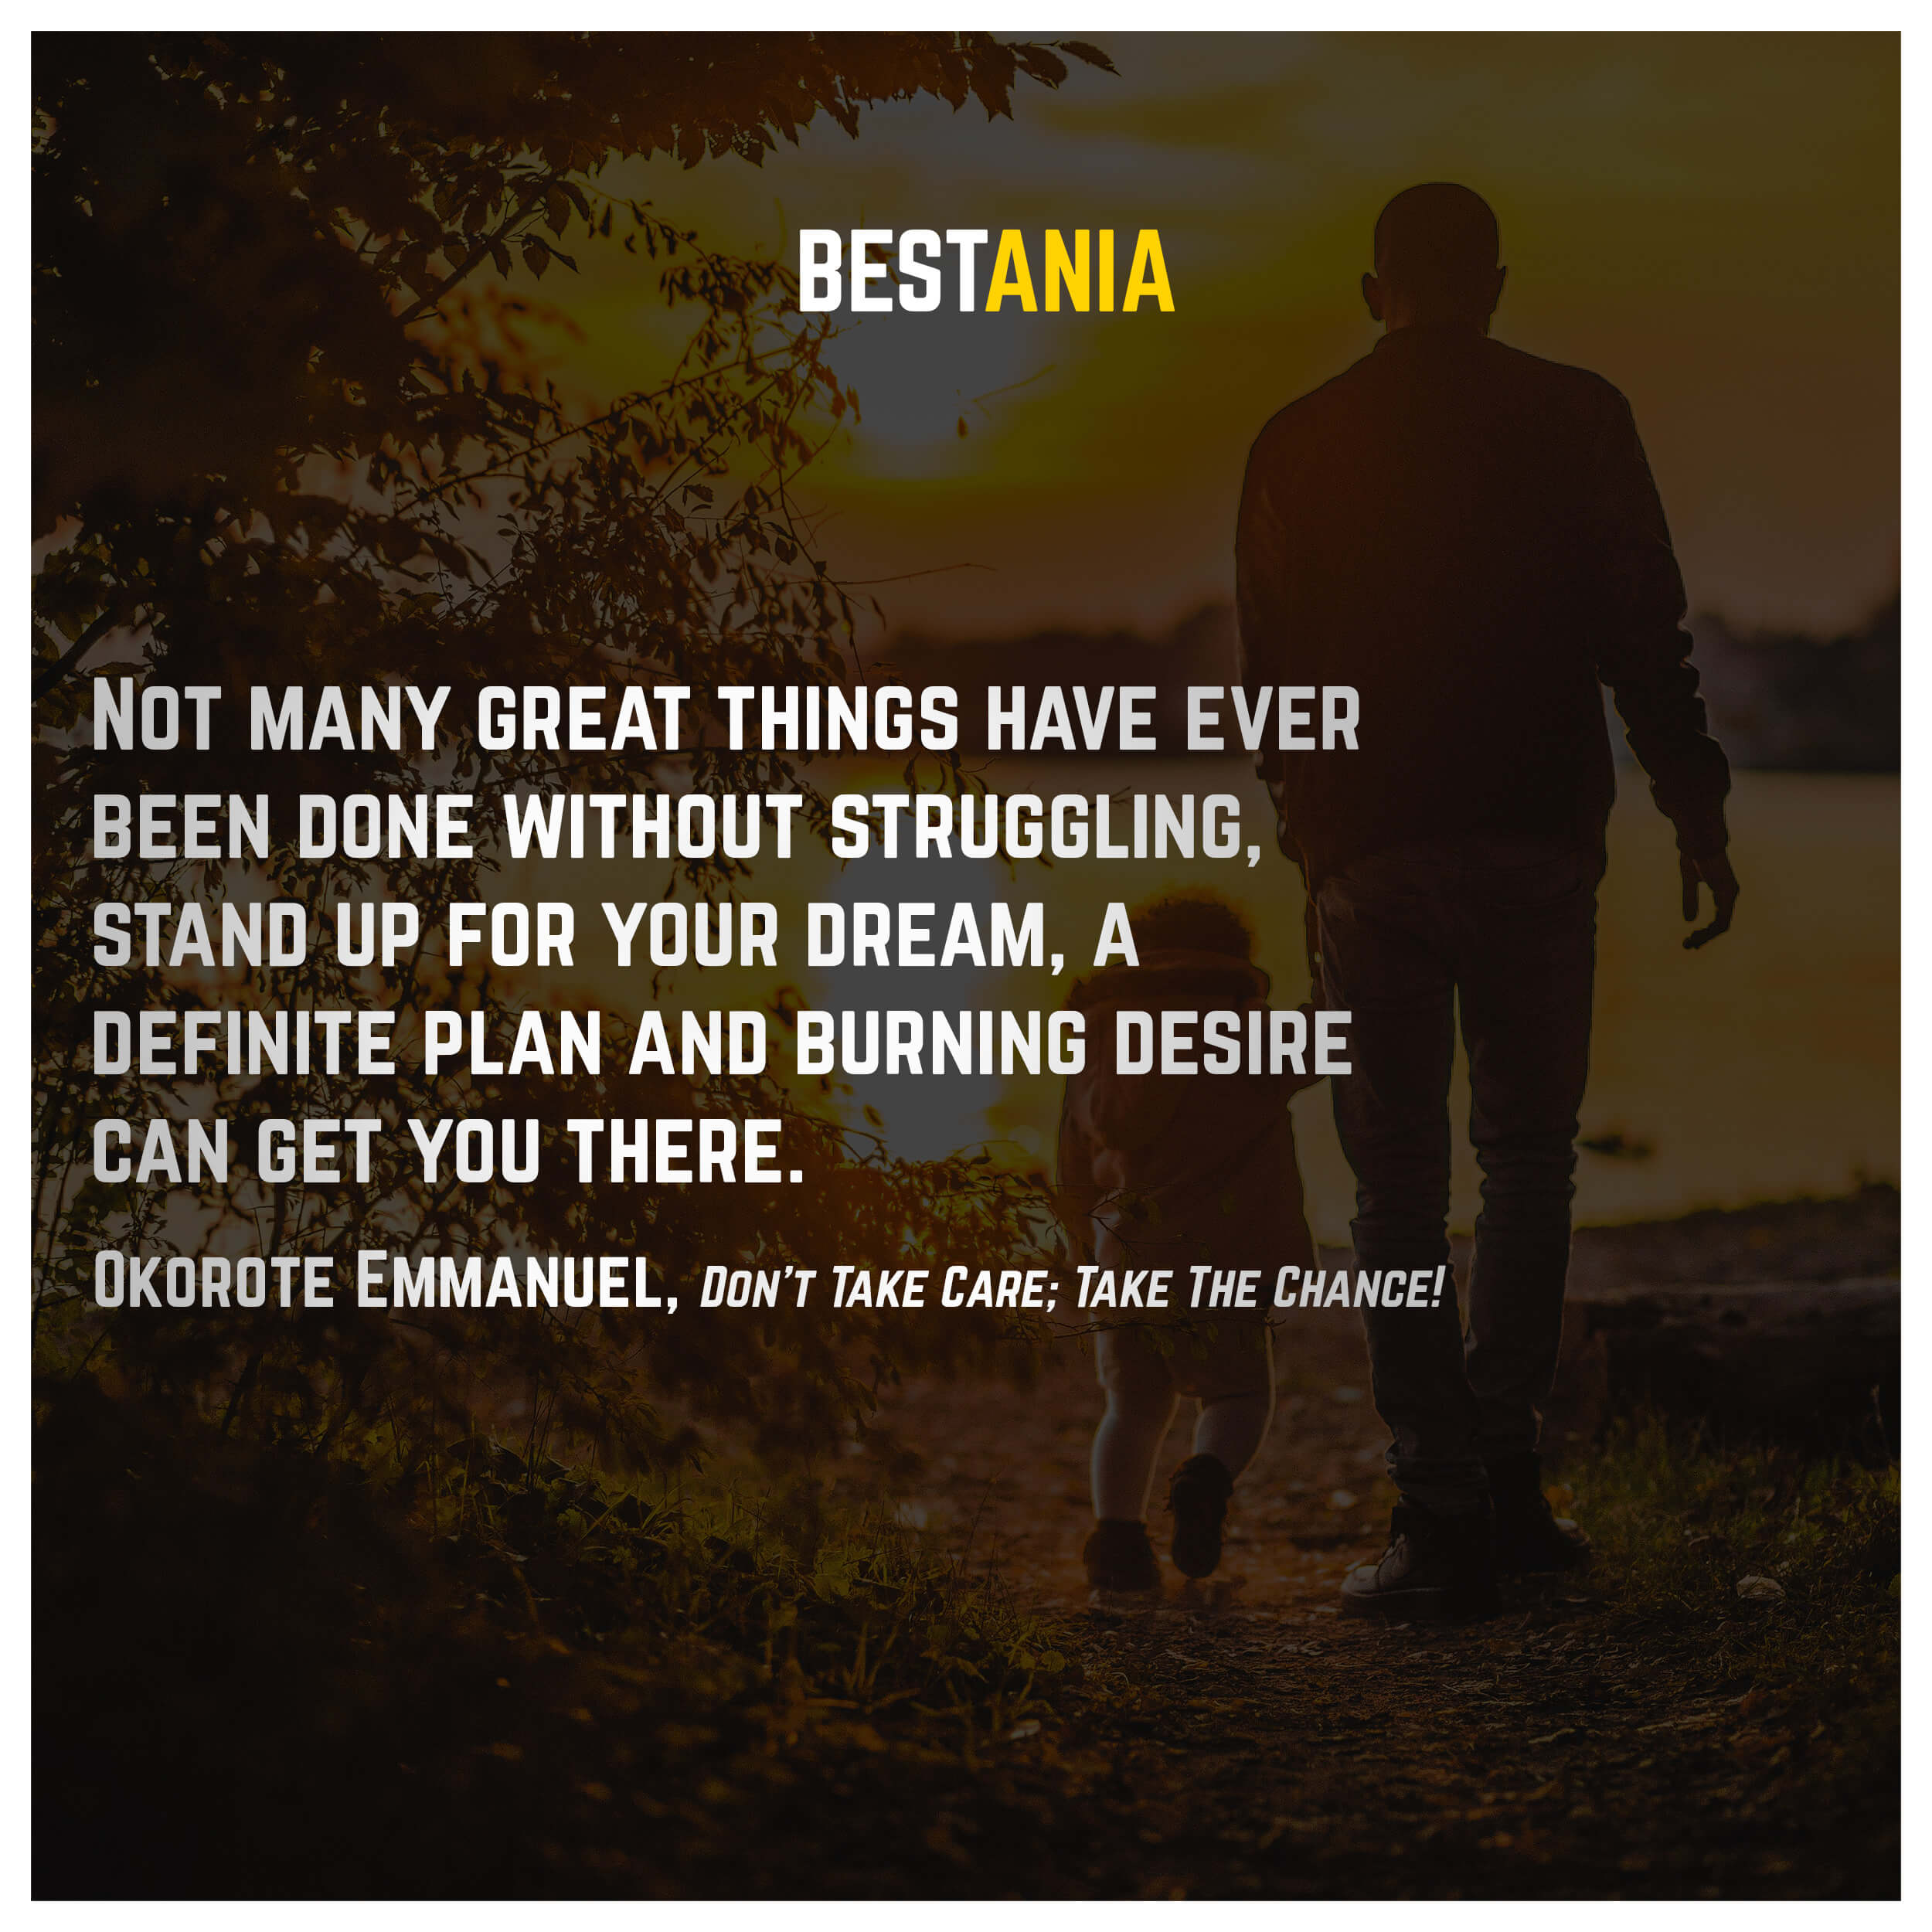 Not many great things have ever been done without struggling, stand up for your dream, a definite plan and burning desire can get you there.Okorote Emmanuel, Don't Take Care; Take The Chance!